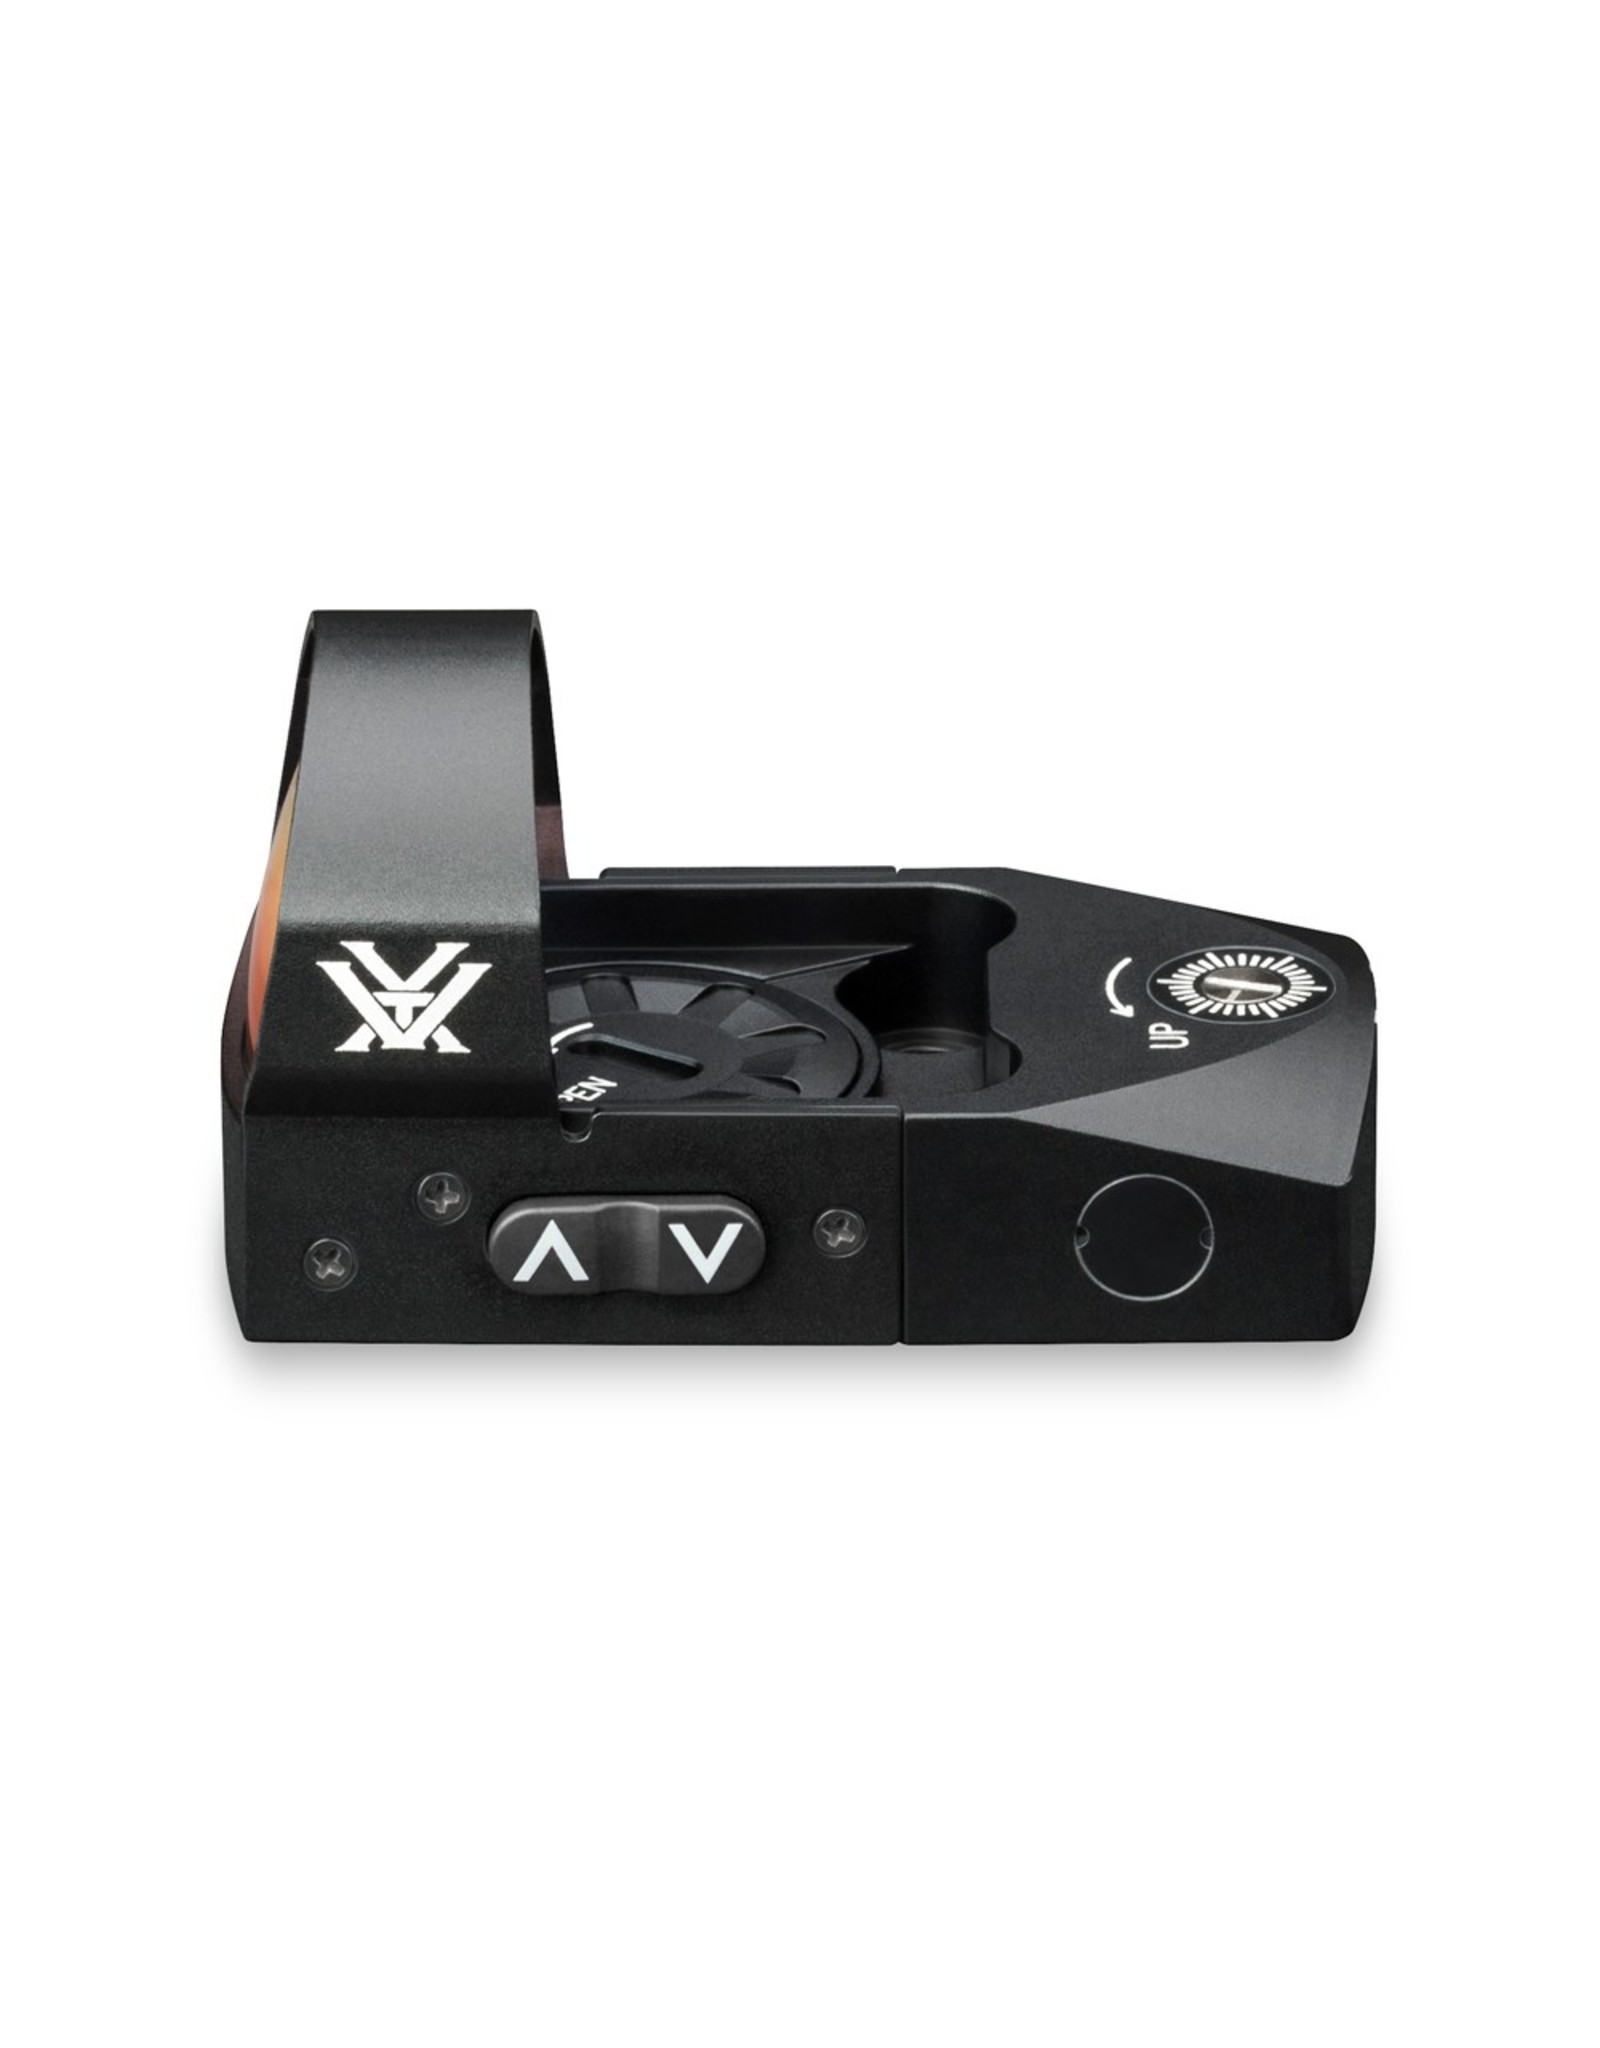 Vortex Vortex Venom Red Dot Top Load (6 MOA Dot)